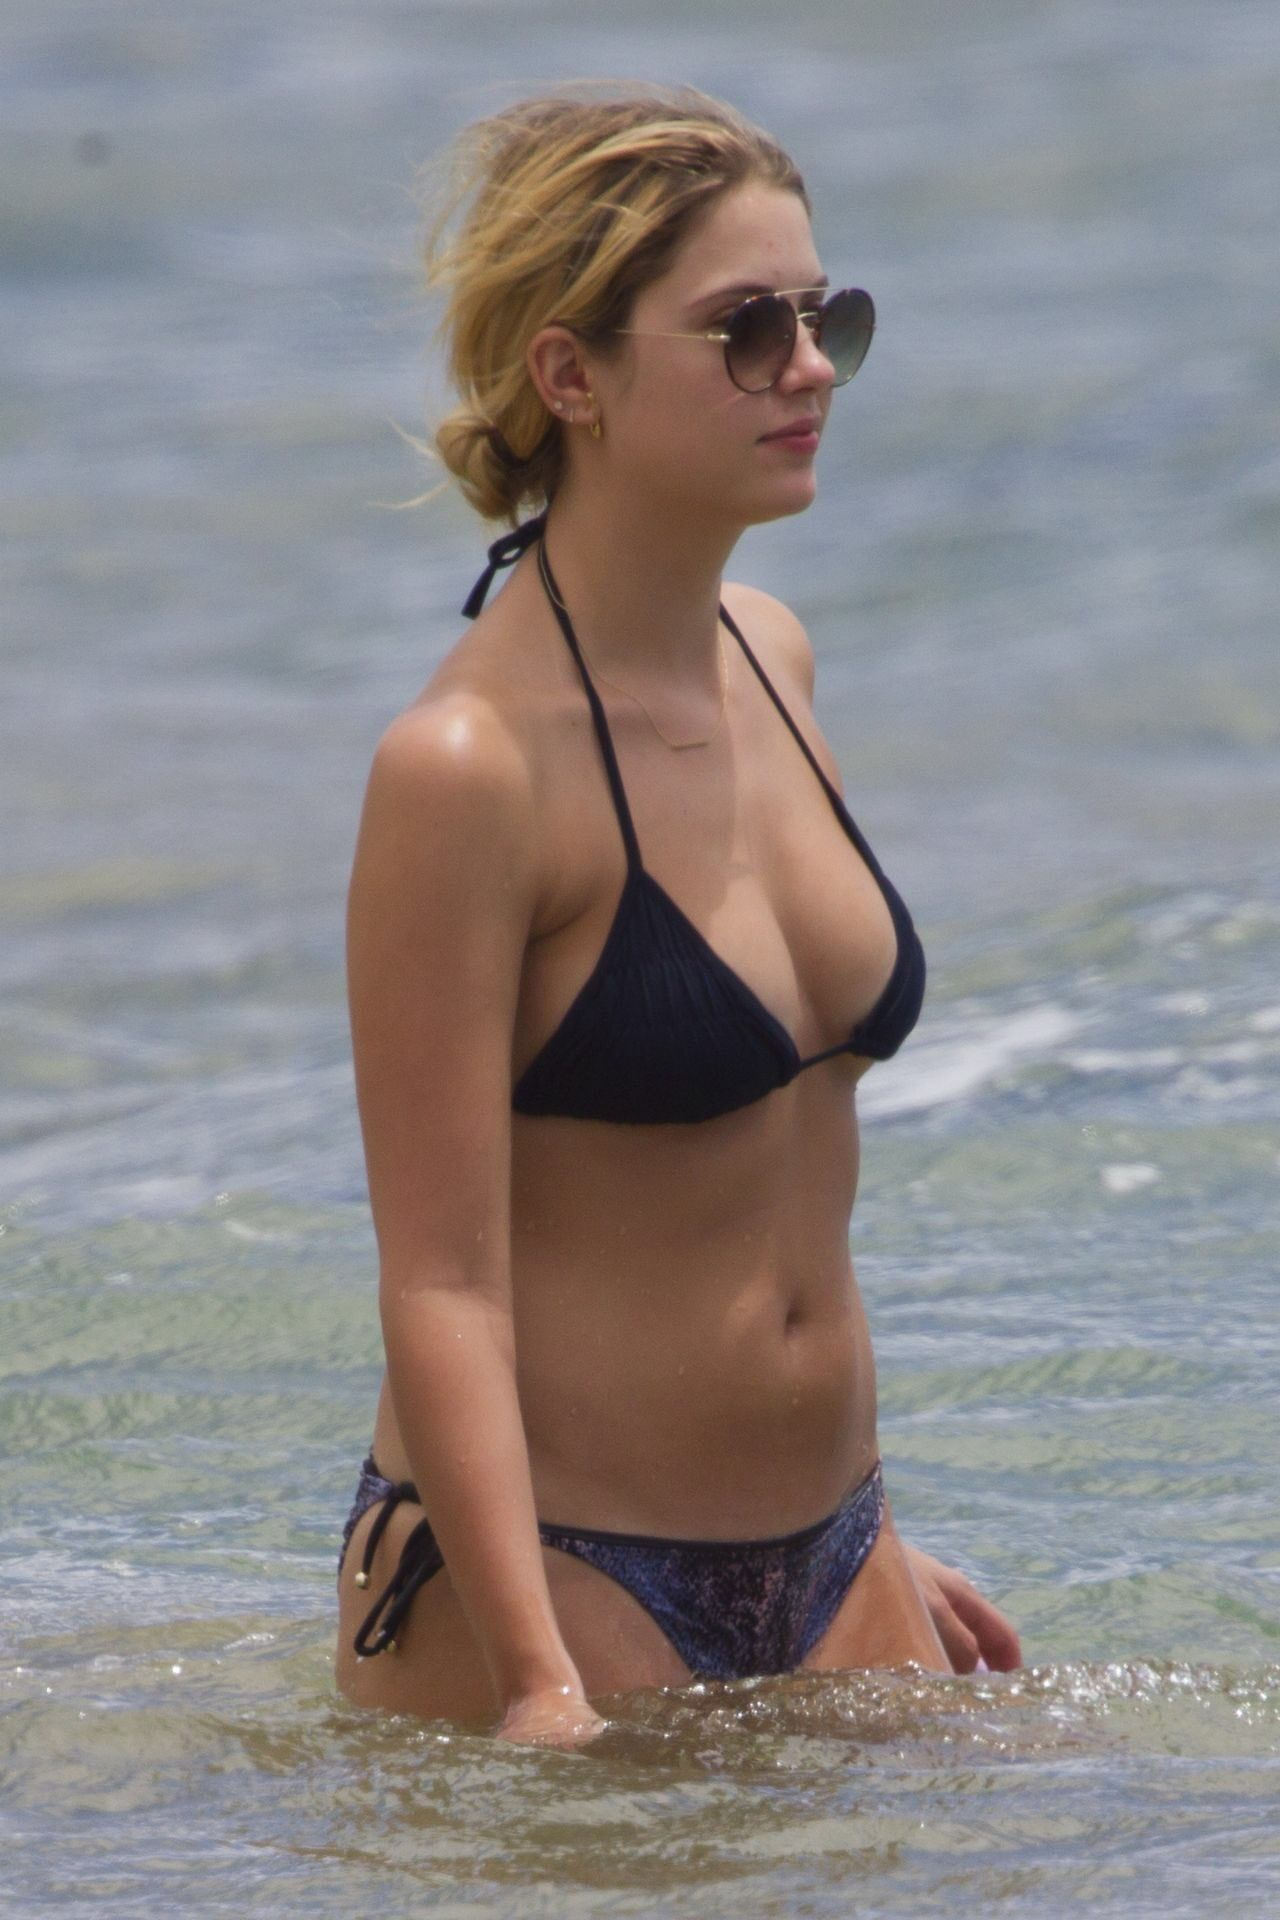 Bikini Ashley Benson naked (73 photo), Topless, Hot, Boobs, see through 2006